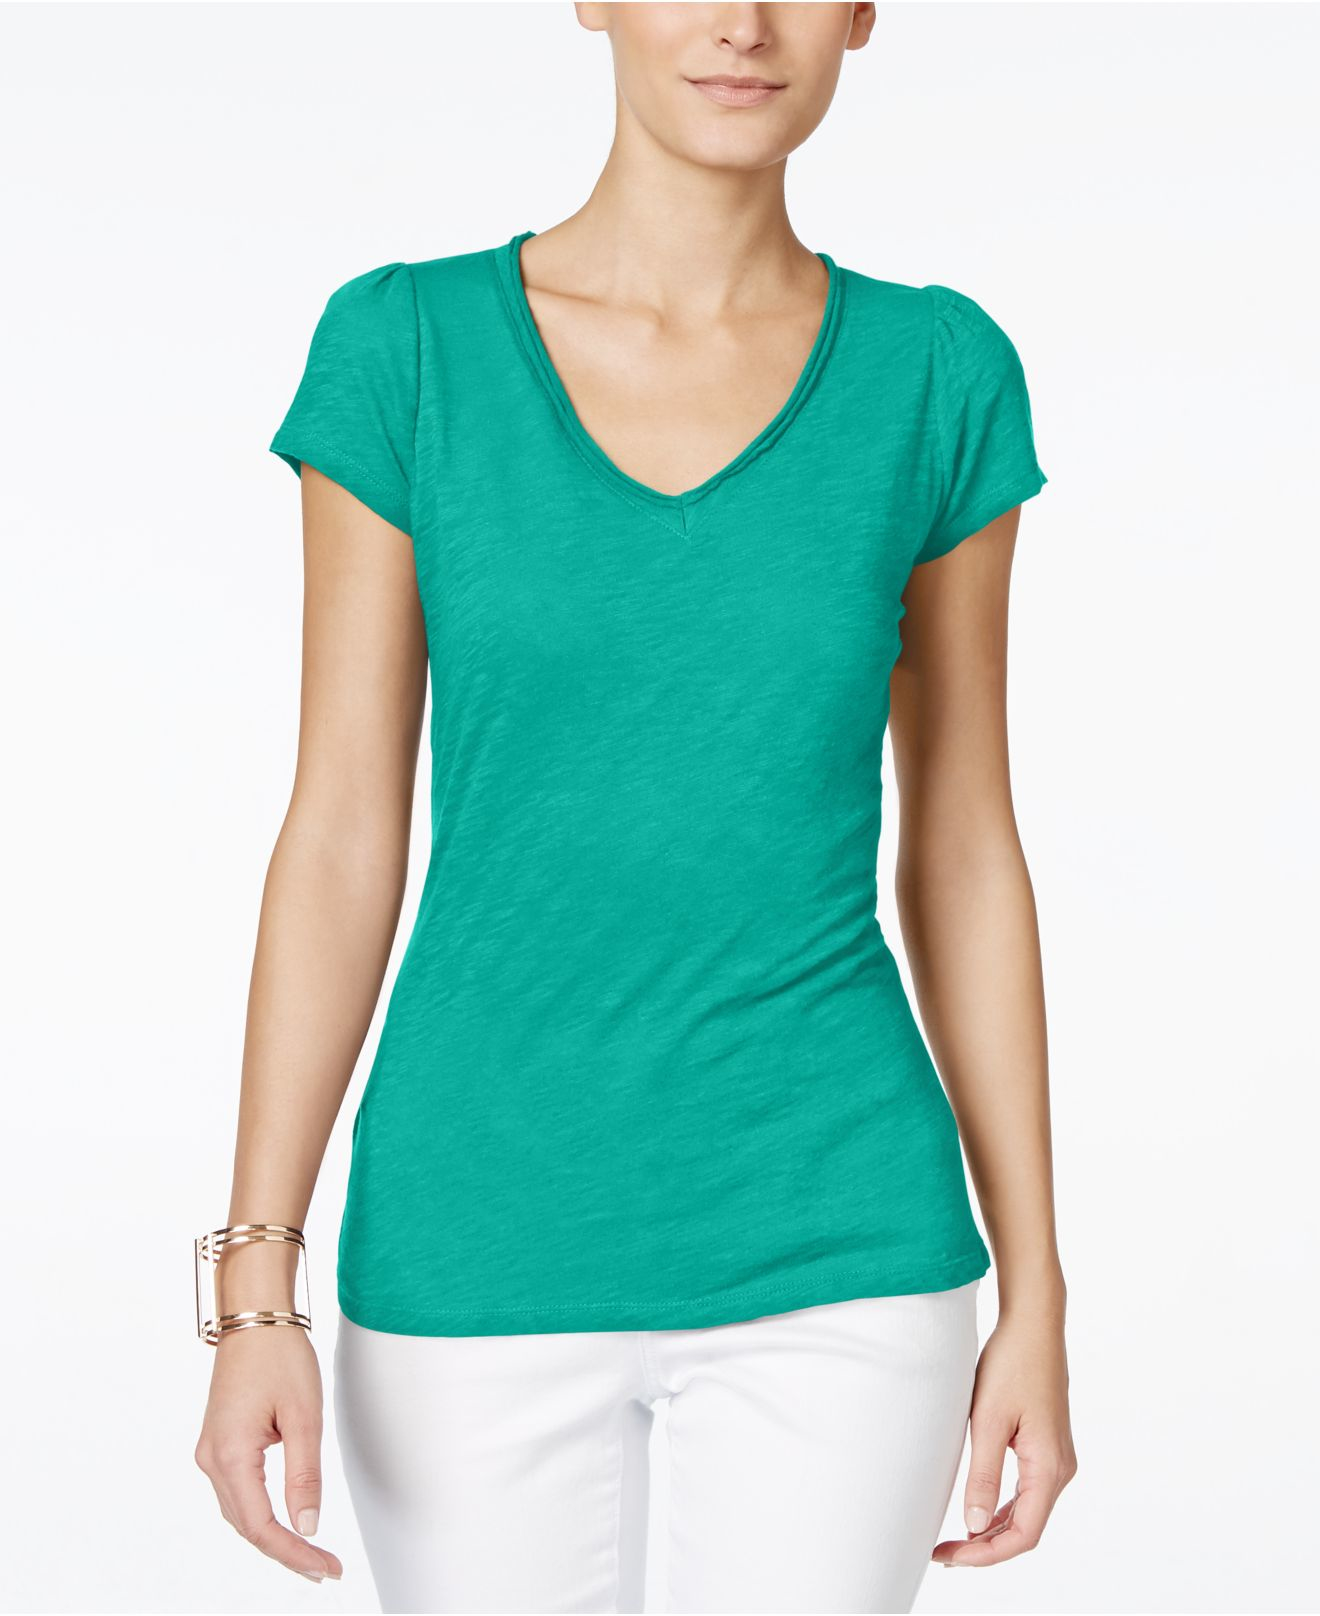 Inc international concepts petite v neck tee in green for Petite white tee shirt